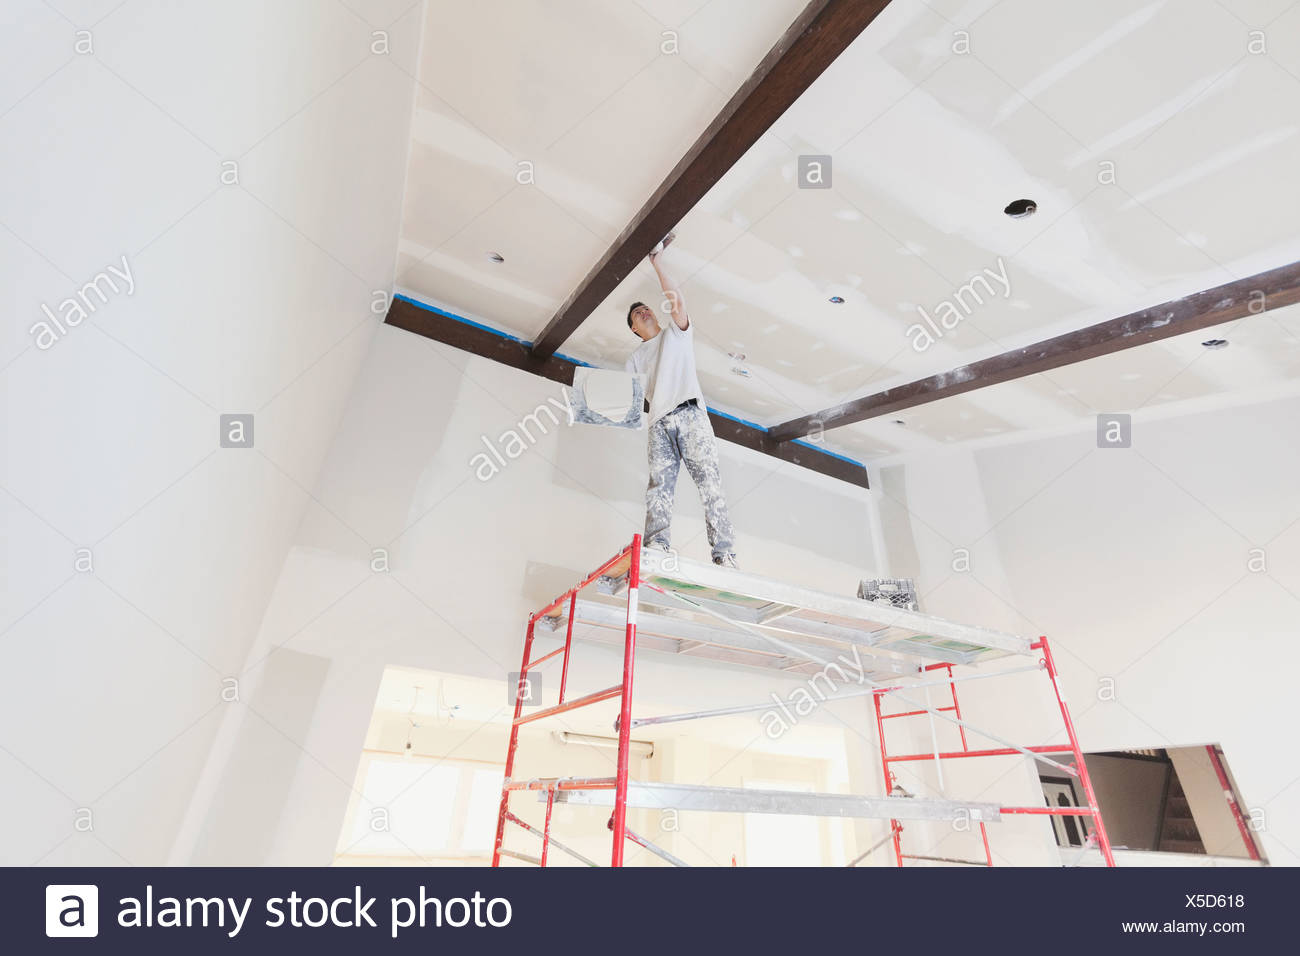 Low angle view of tradesman plastering drywall in home - Stock Image